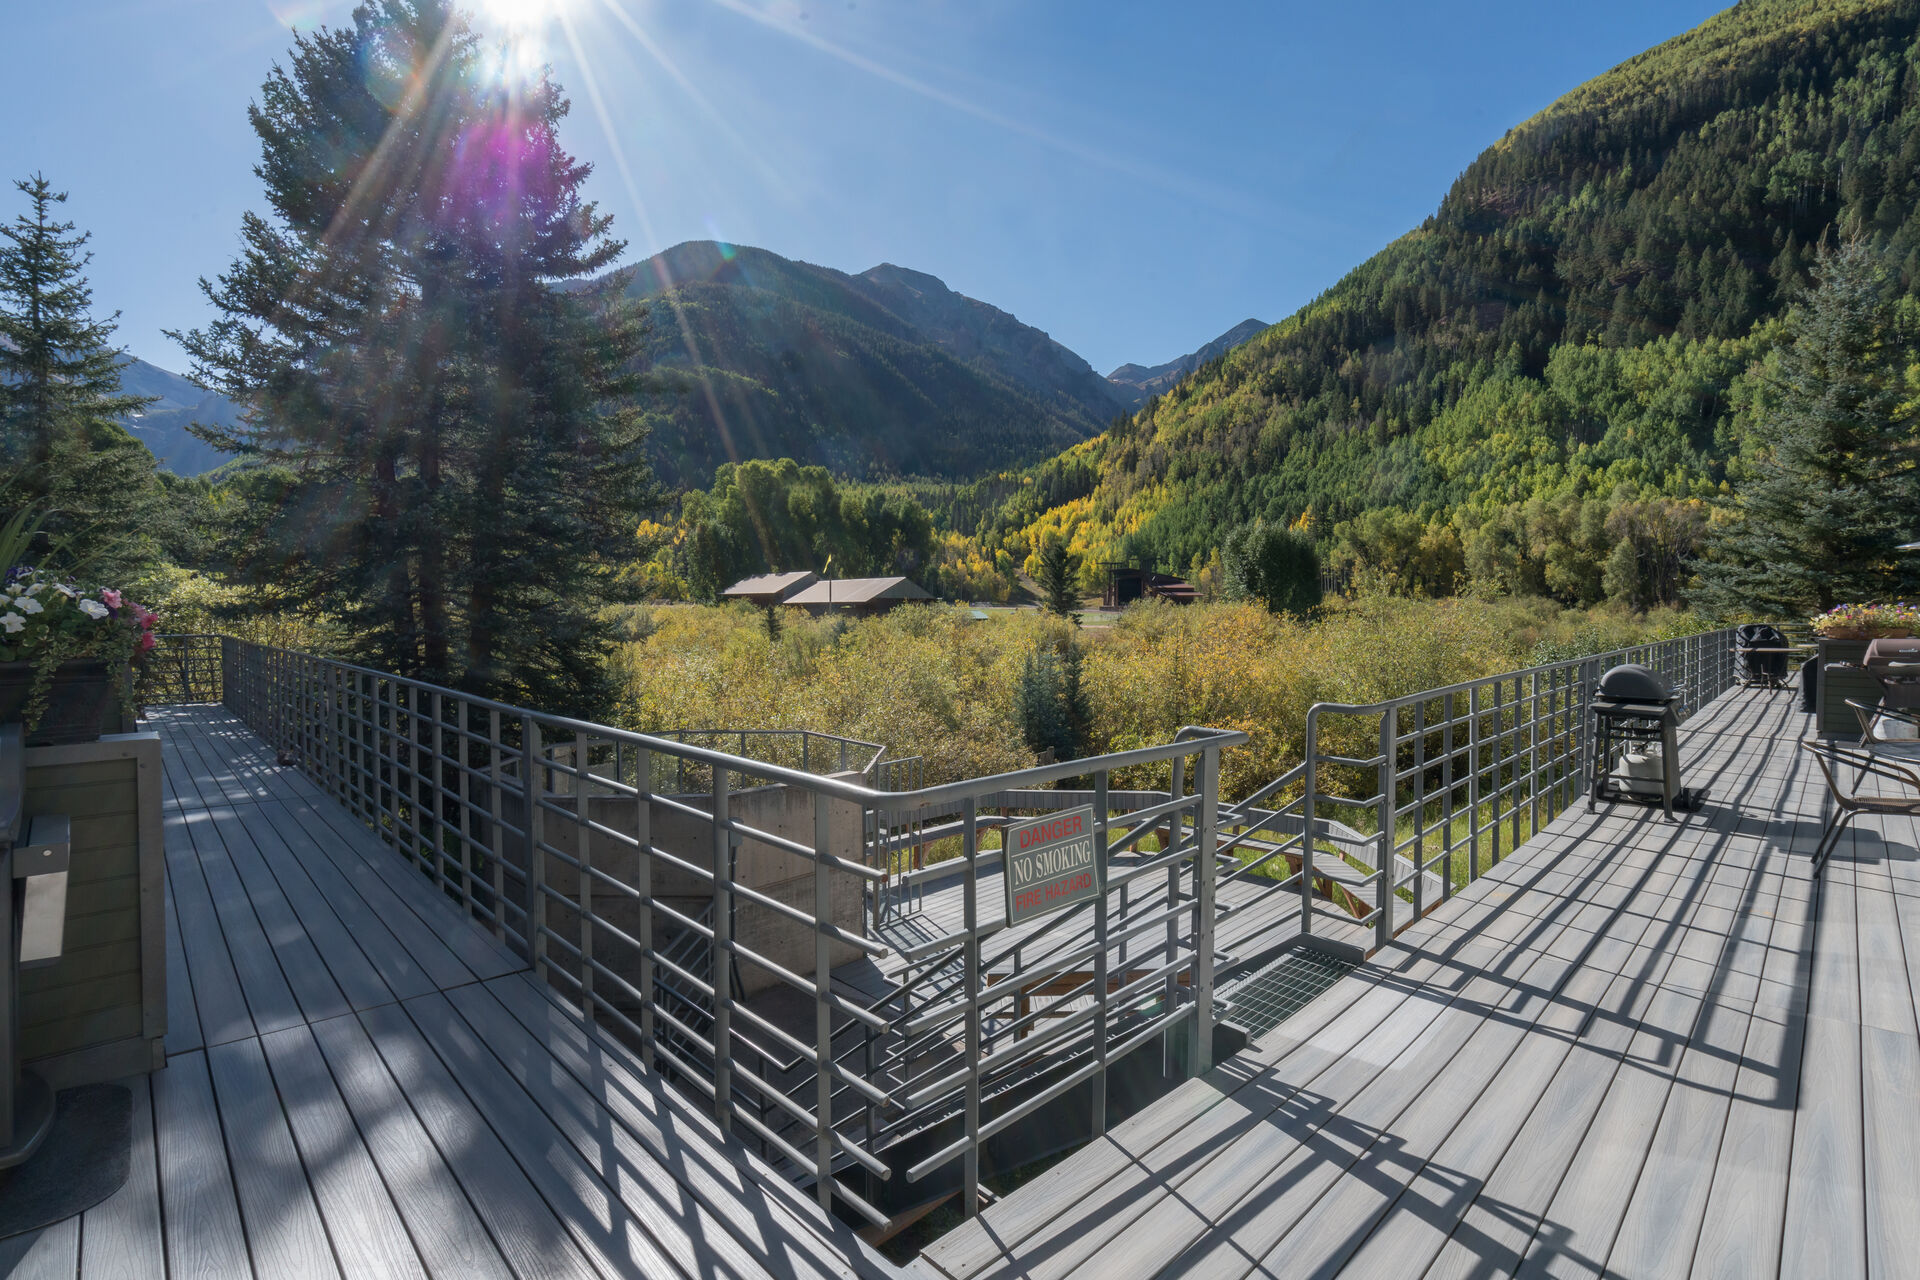 Views of the surrounding area from the deck of this Telluride condo.